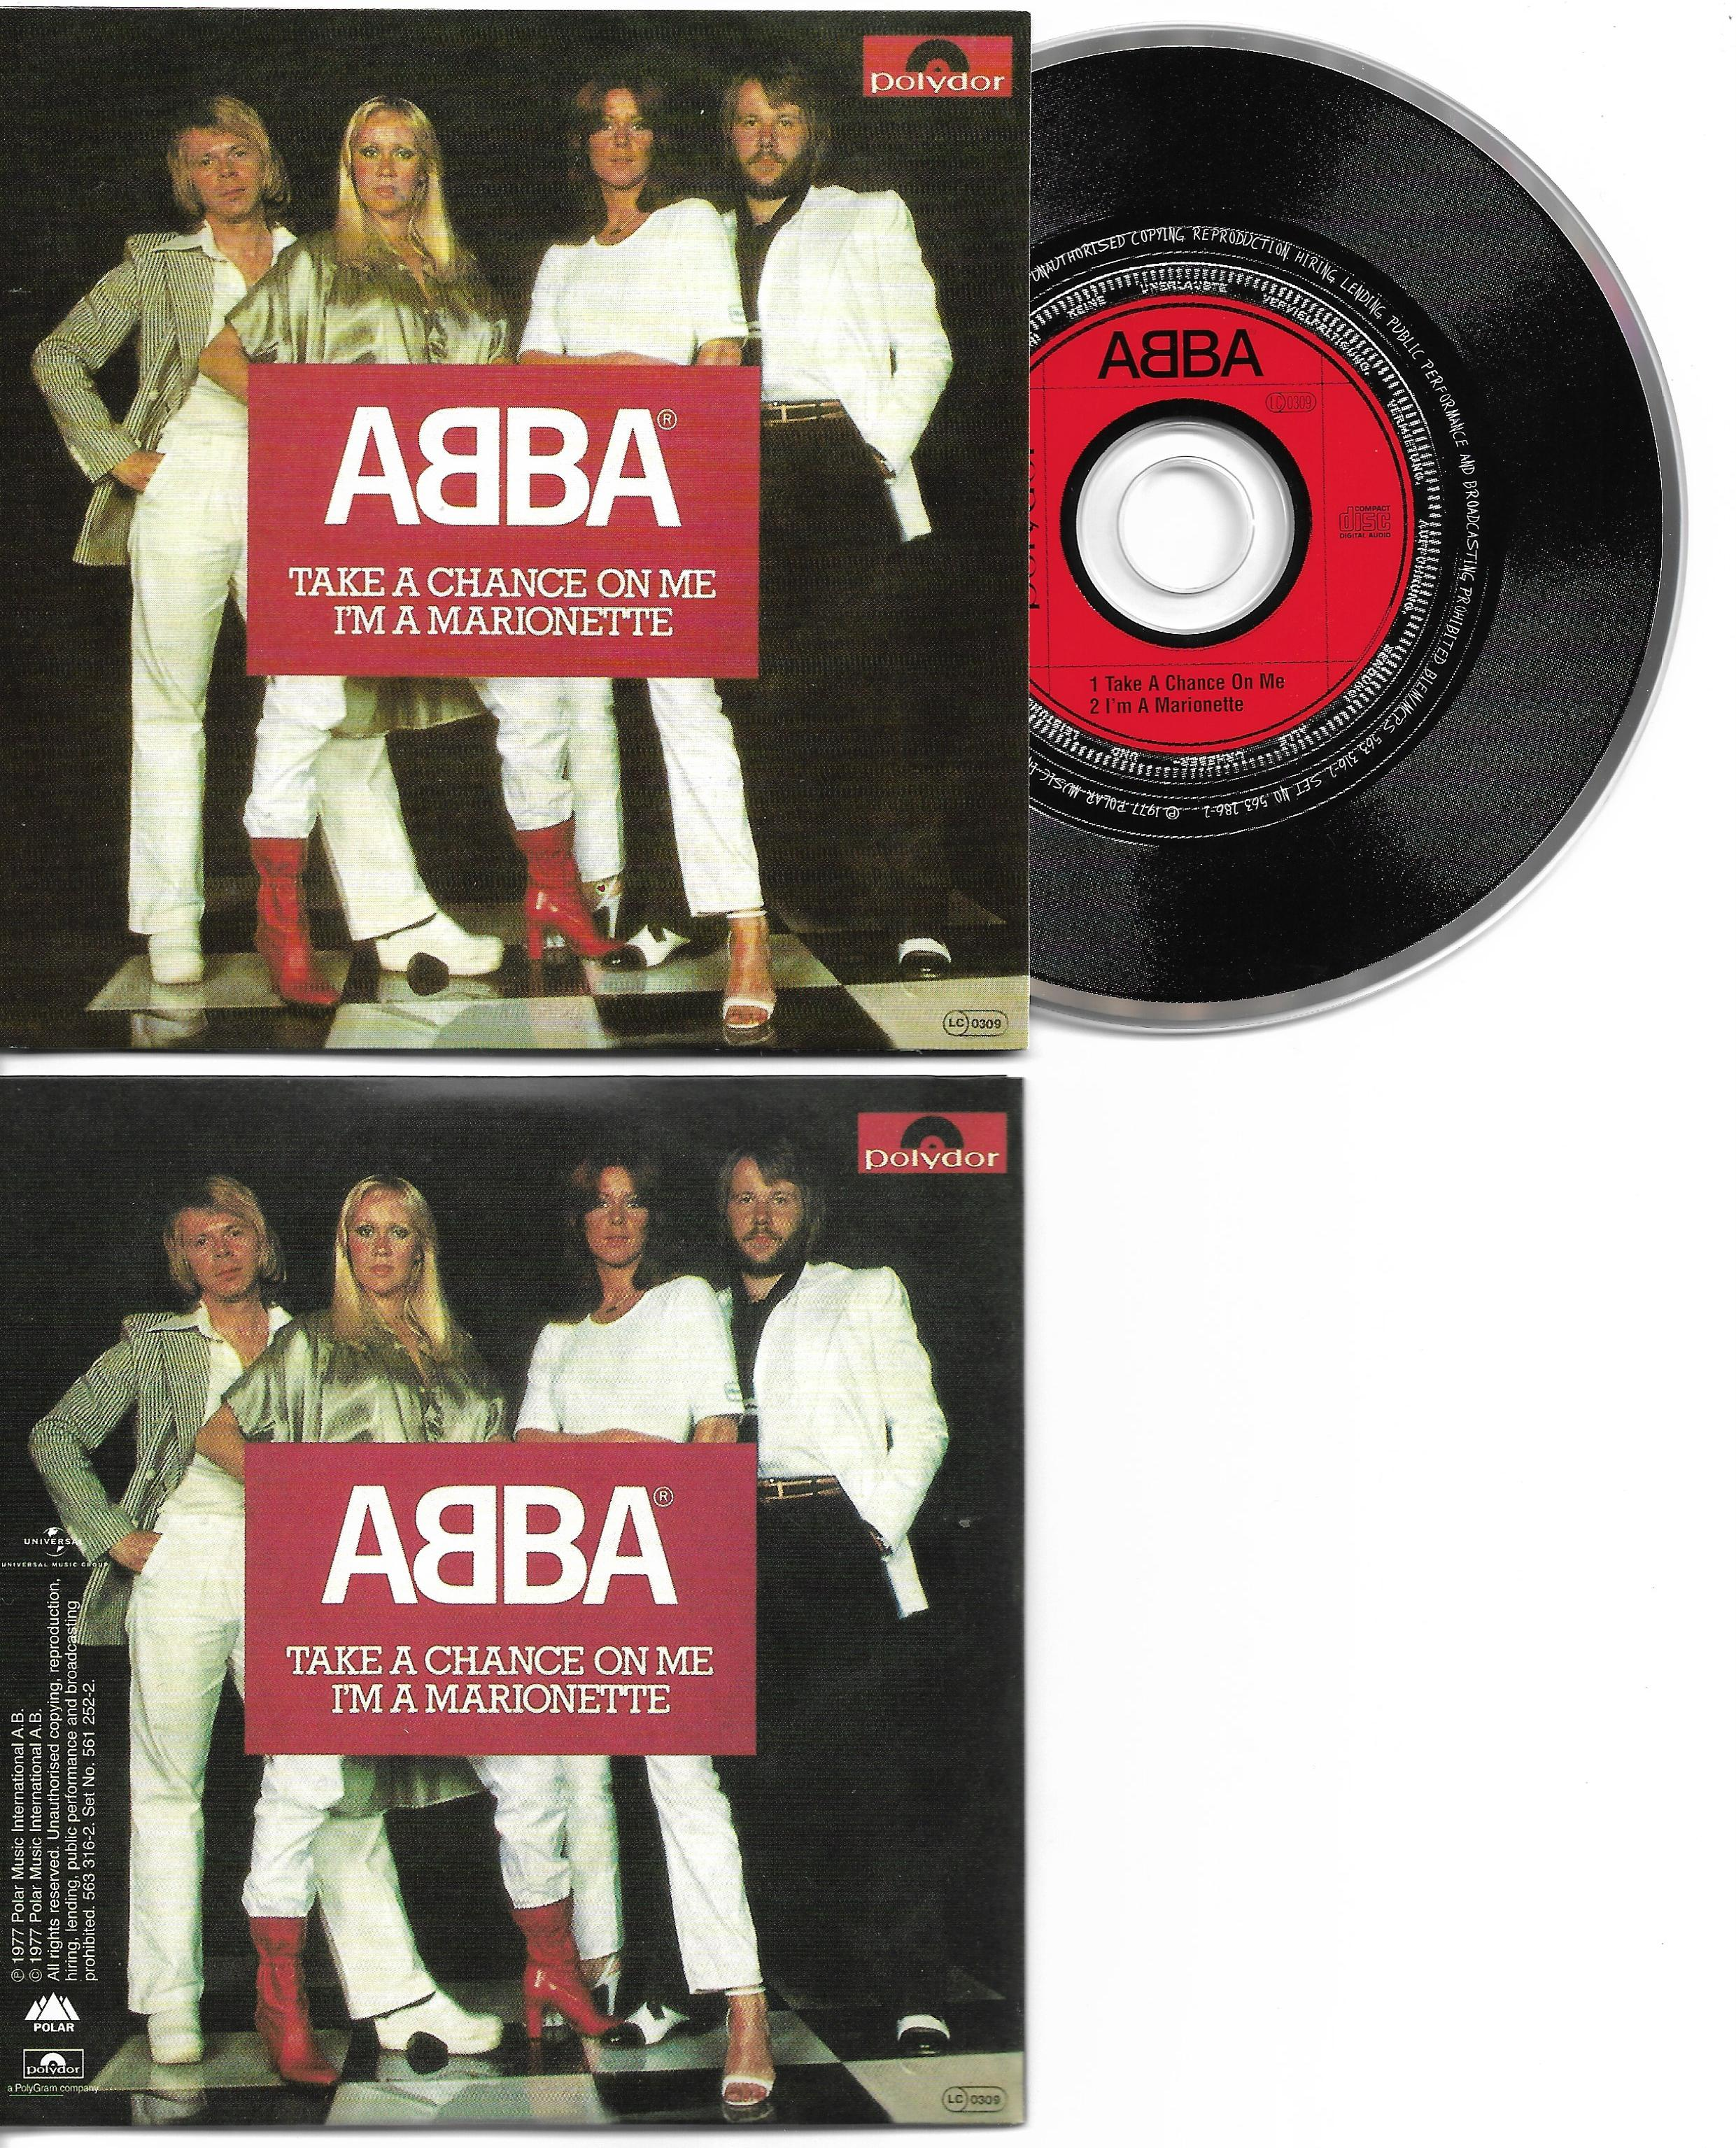 ABBA - Take A Chance On Me 2-track Card Sleeve